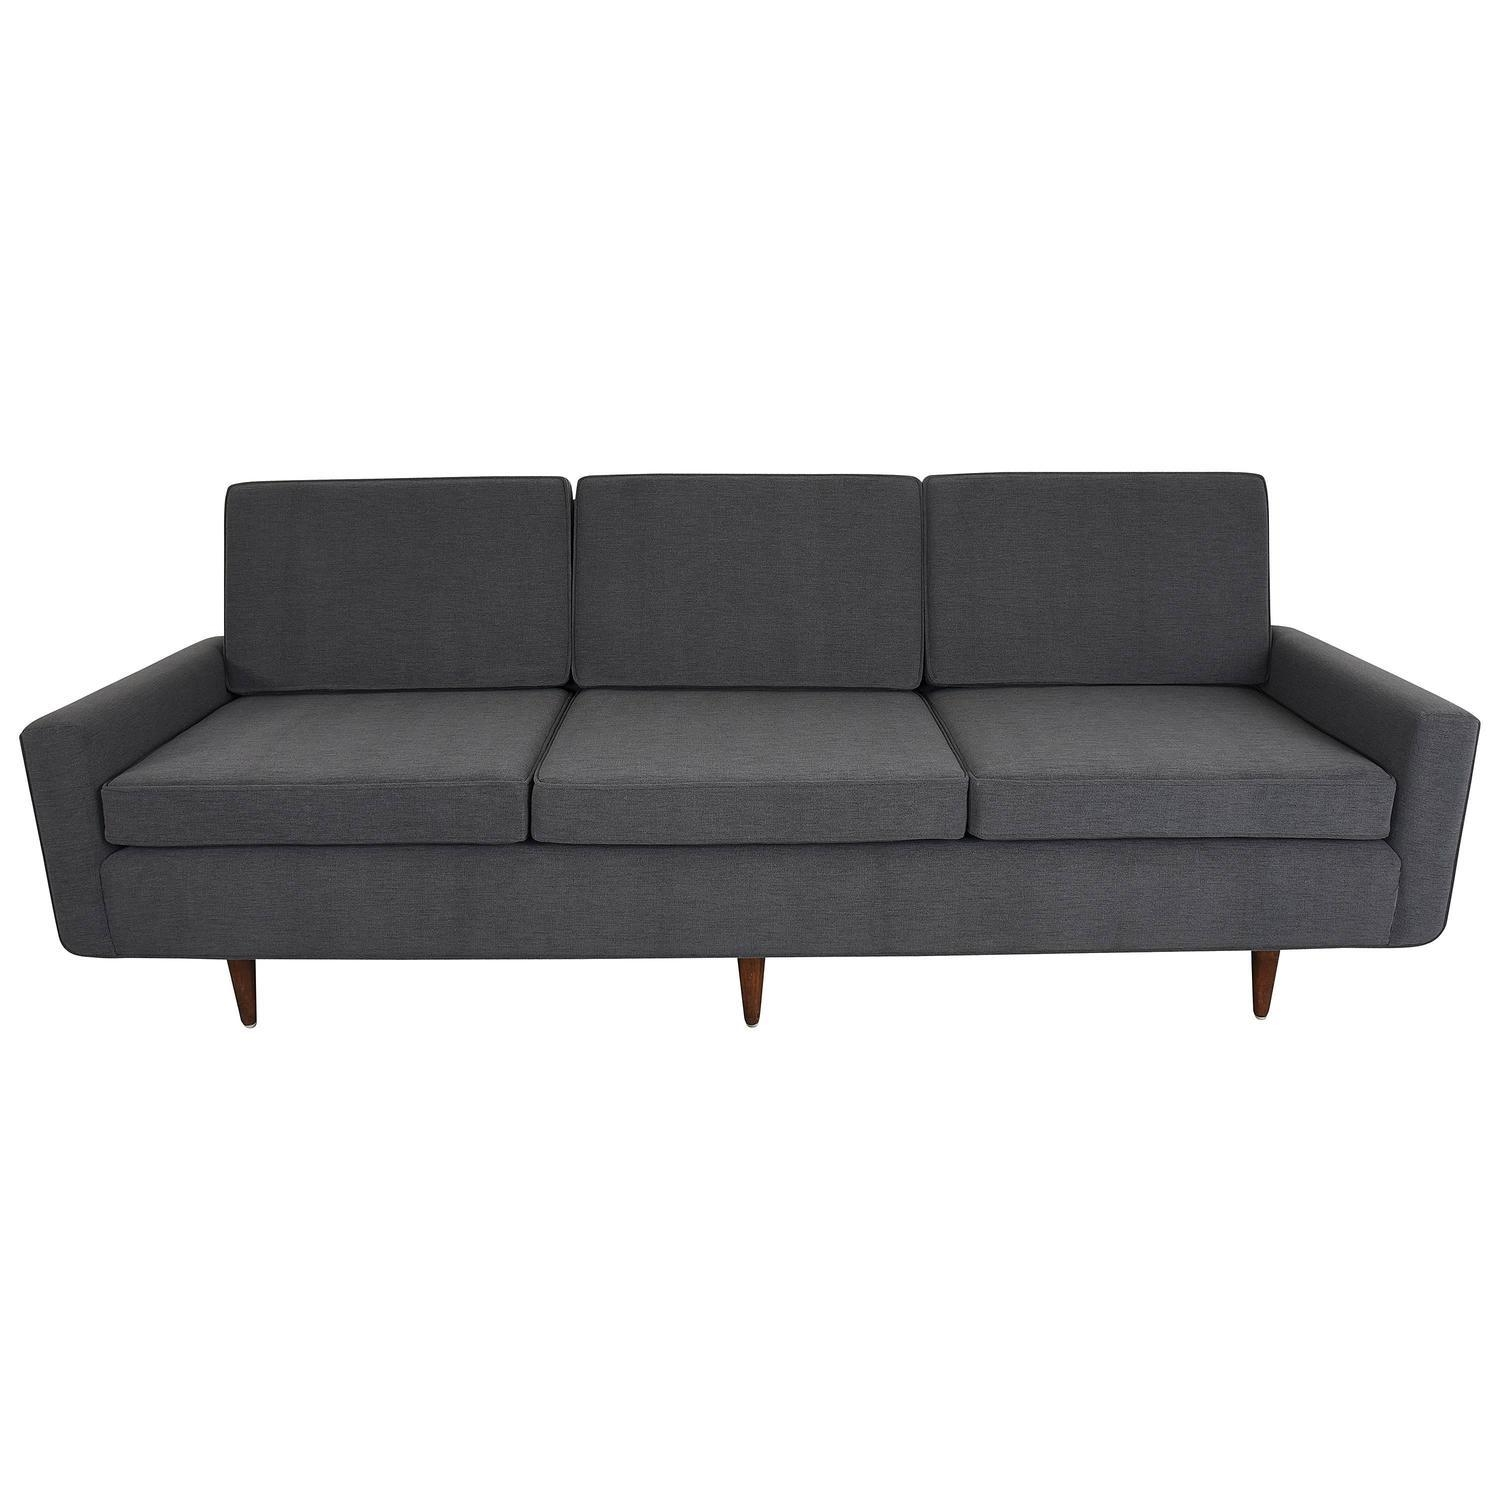 20 Best Ideas Florence Knoll Leather Sofas